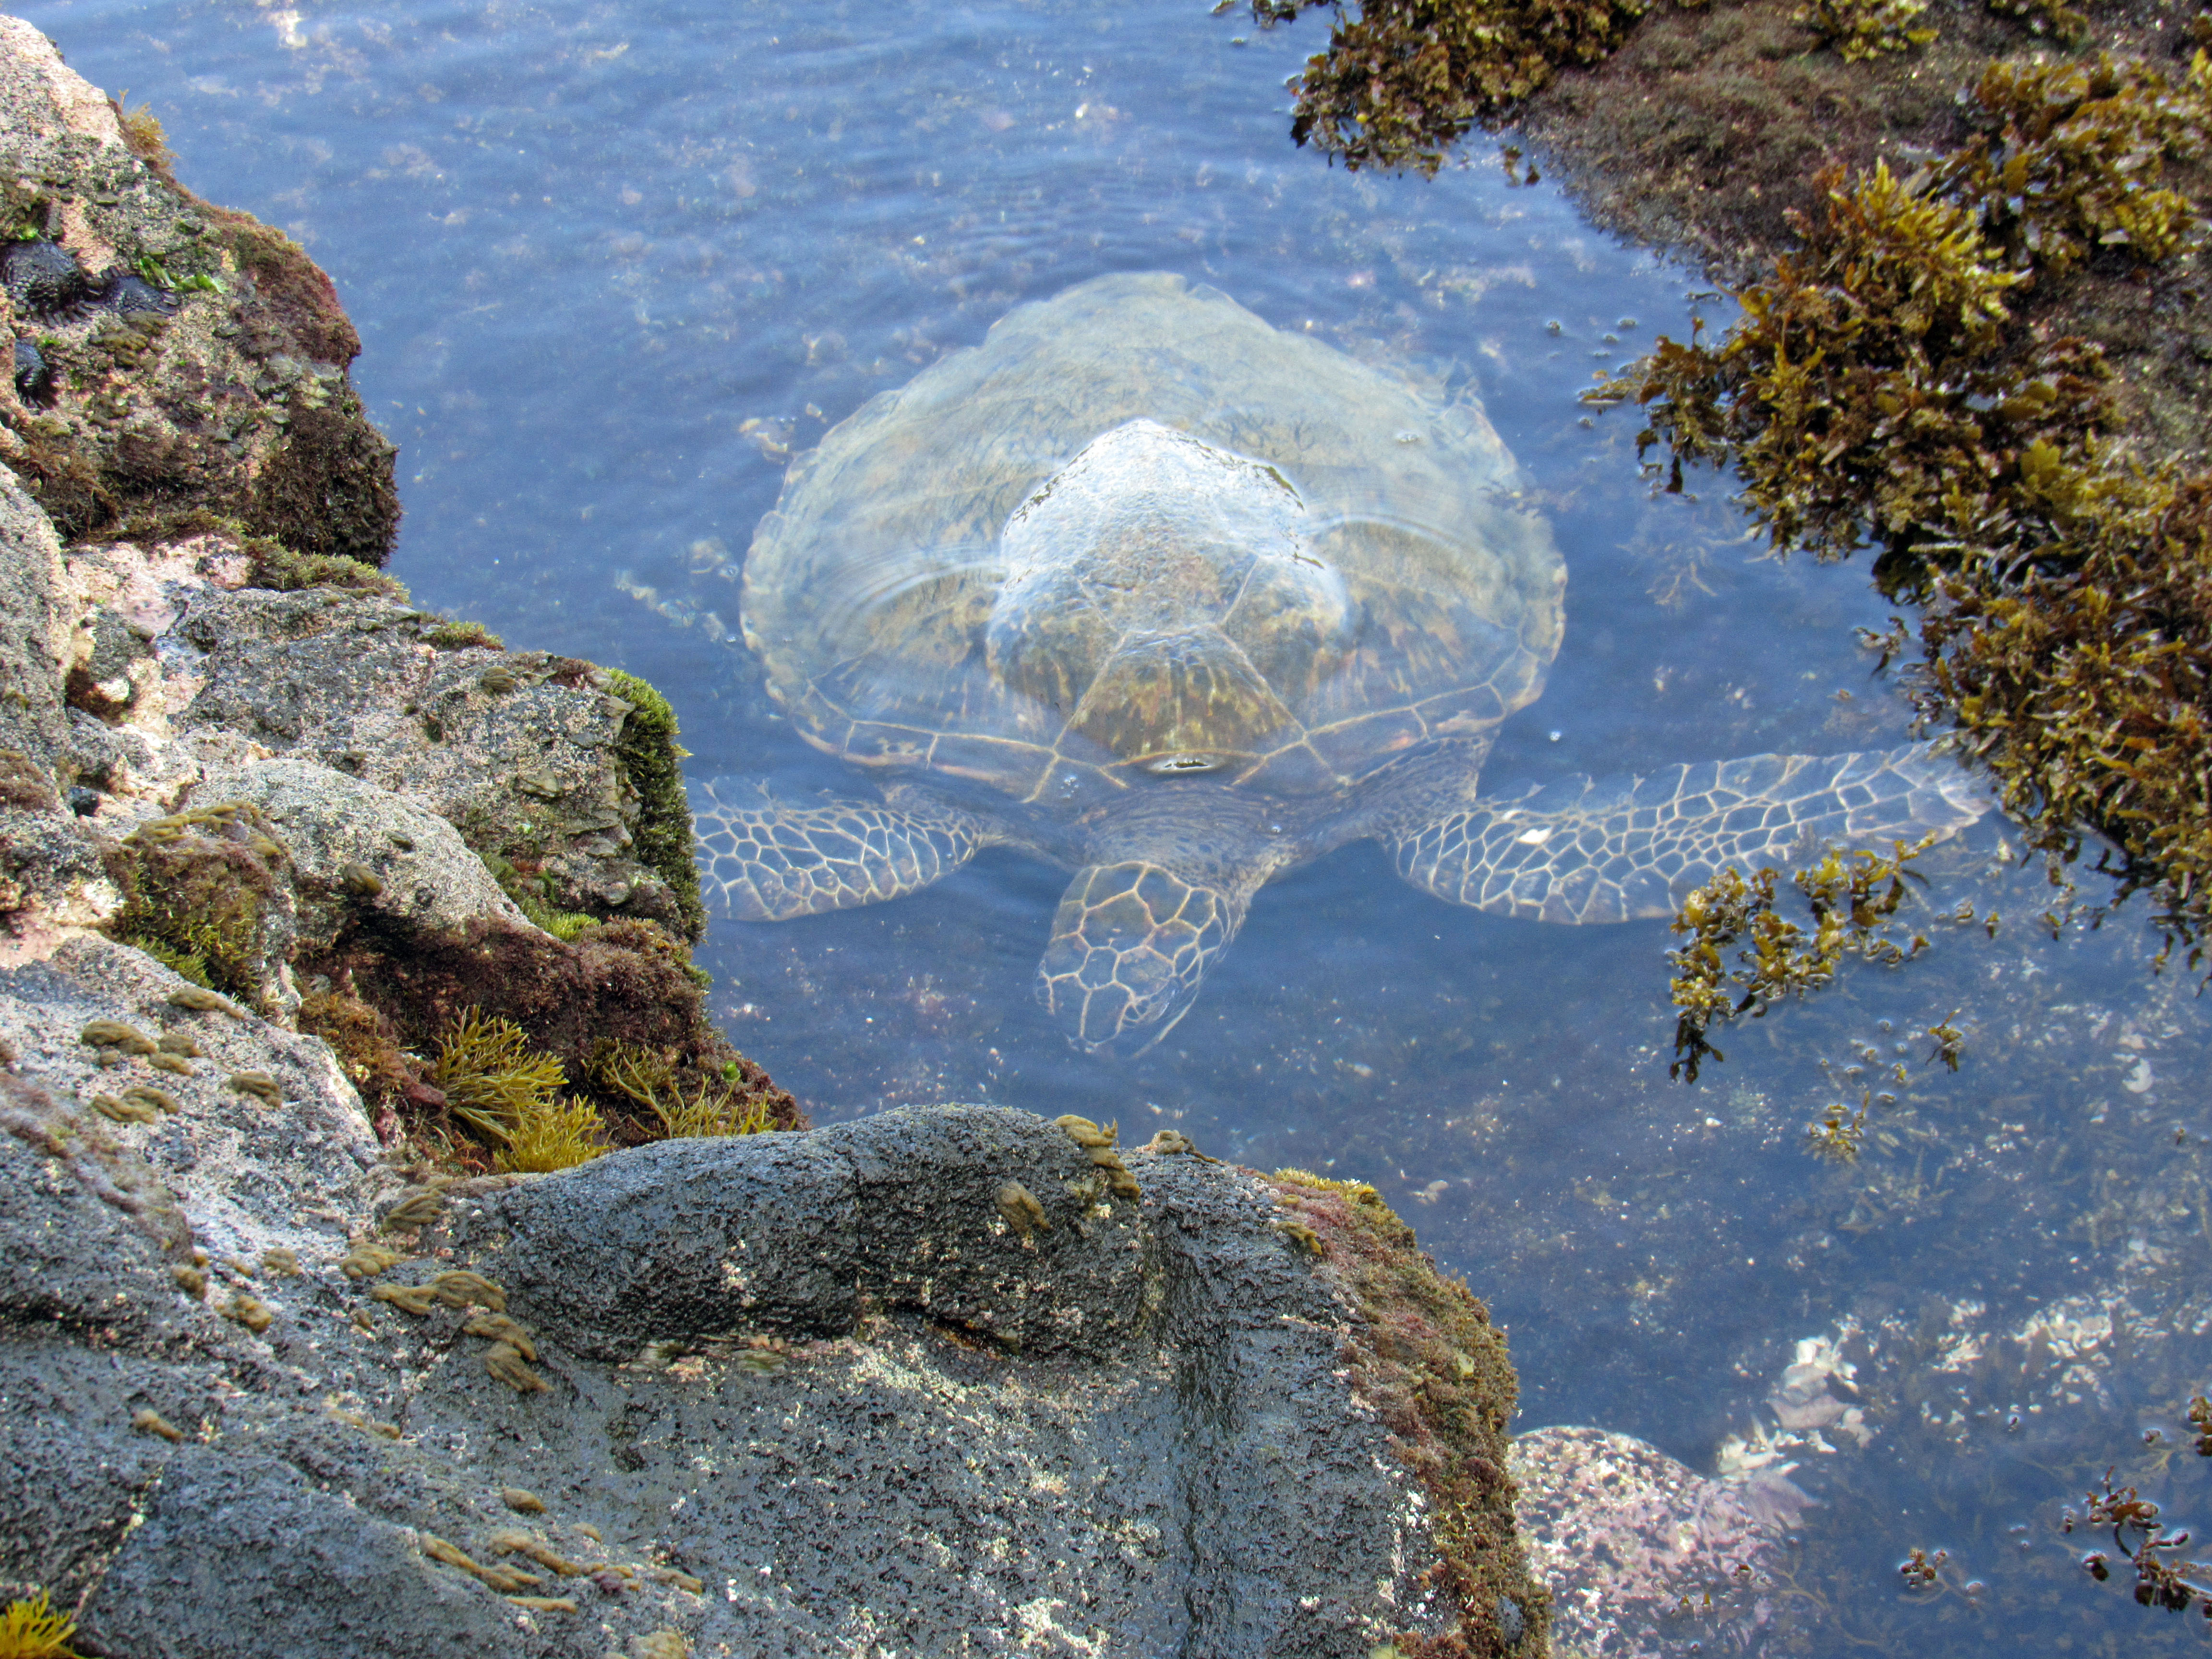 Turtles love to come eat in the tidal pools below your lanai.